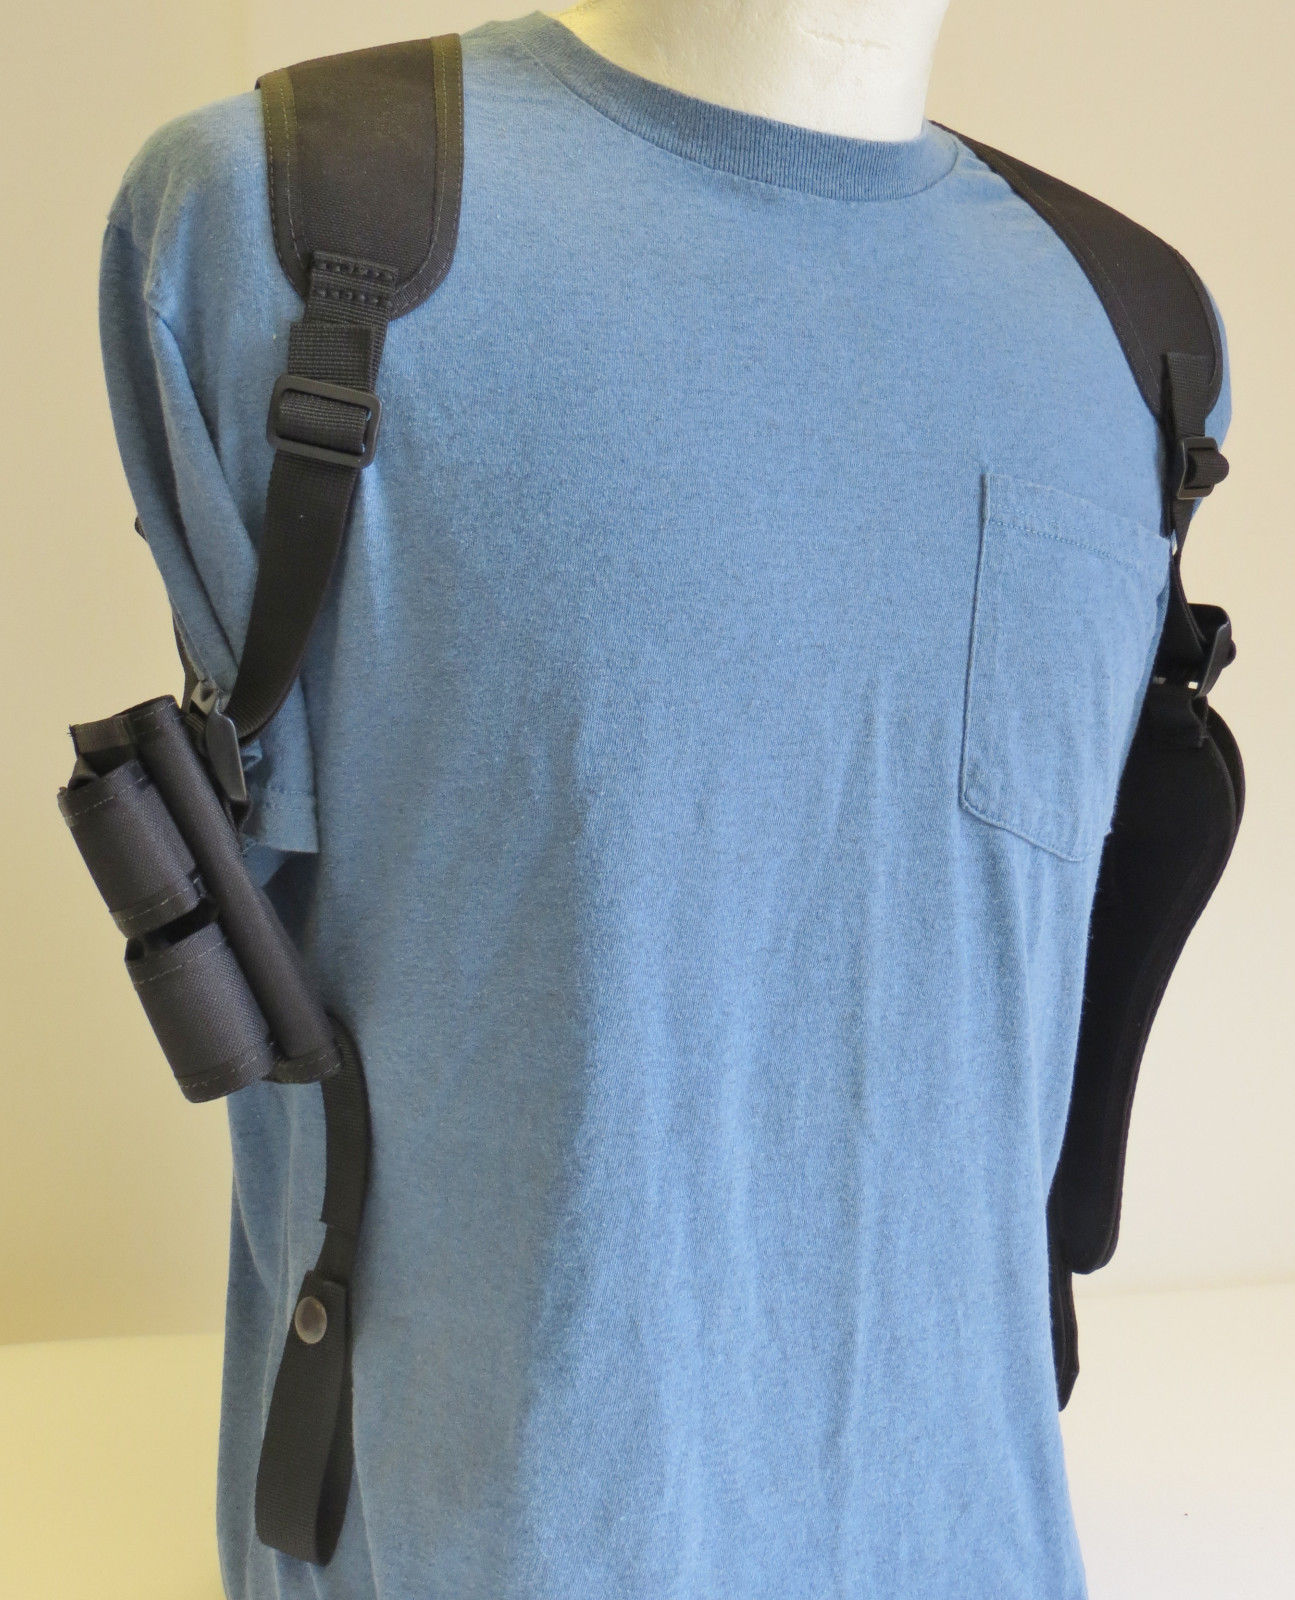 Gun Shoulder Holster with Ammo Pouch TAURUS and 47 similar items